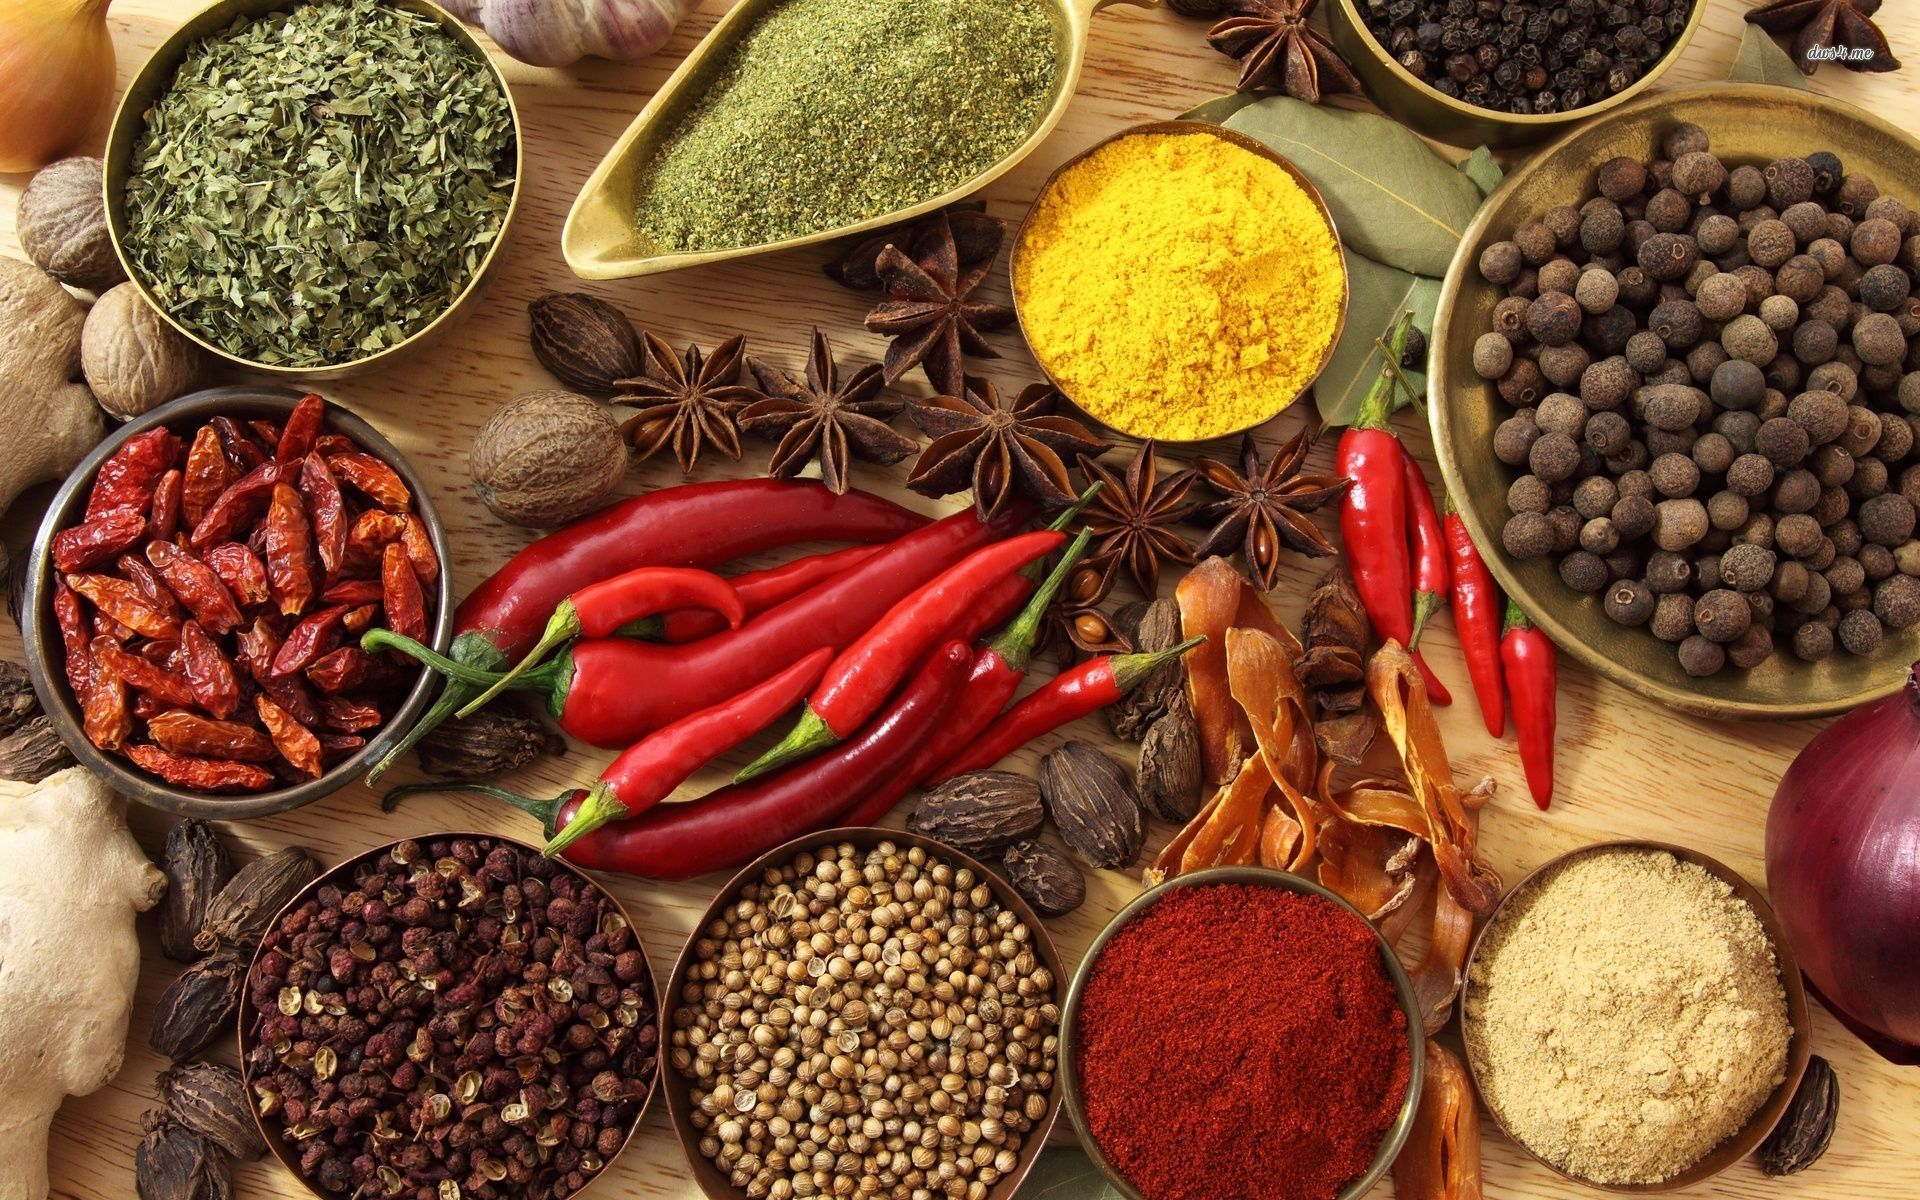 Spices exports jumps 23% to $359 million in June on rising demand: Assocham